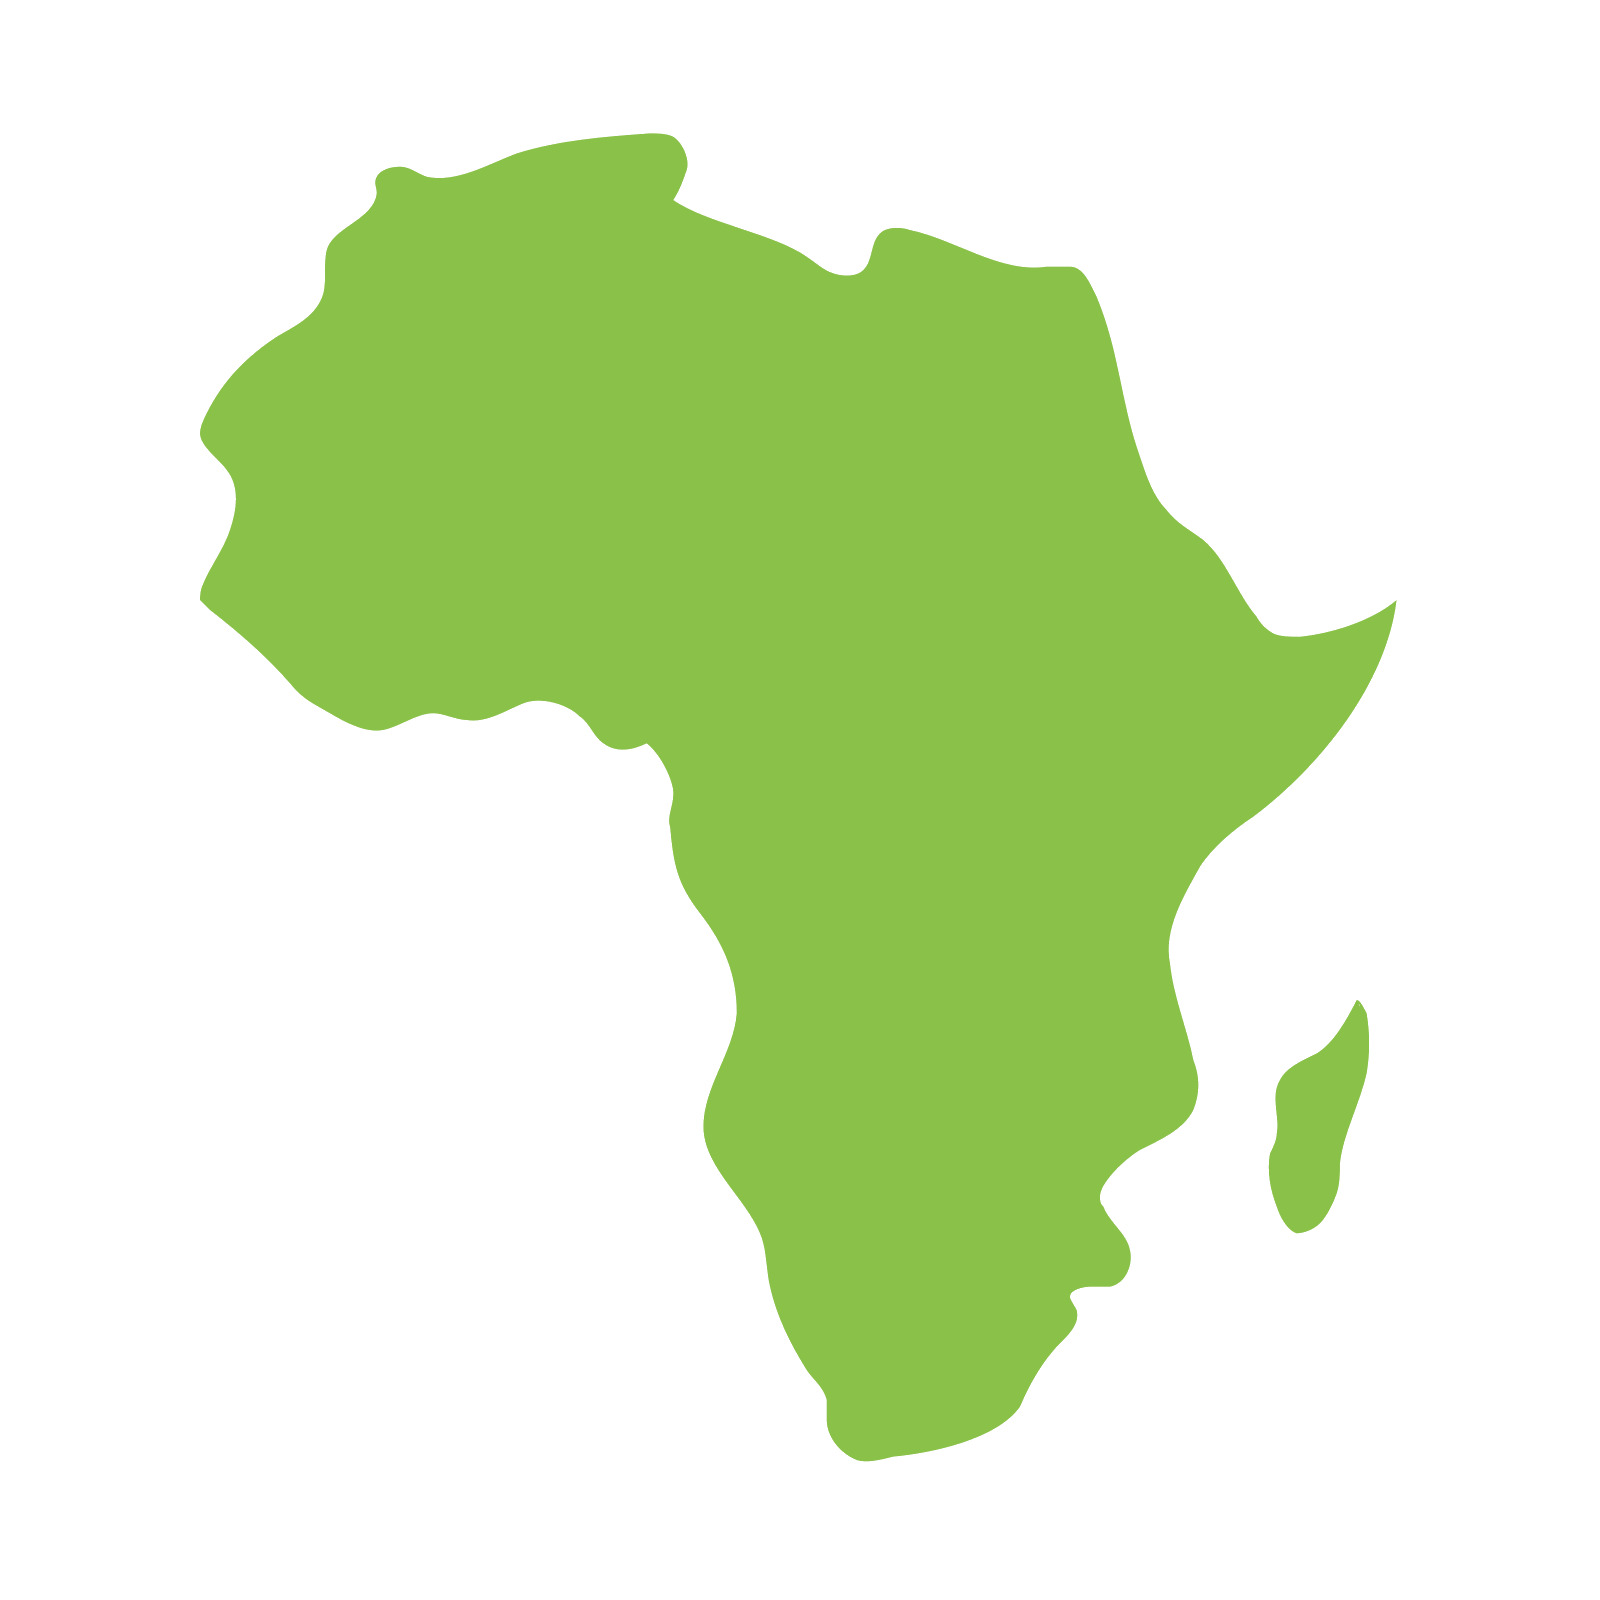 Africa png. Icon free download and